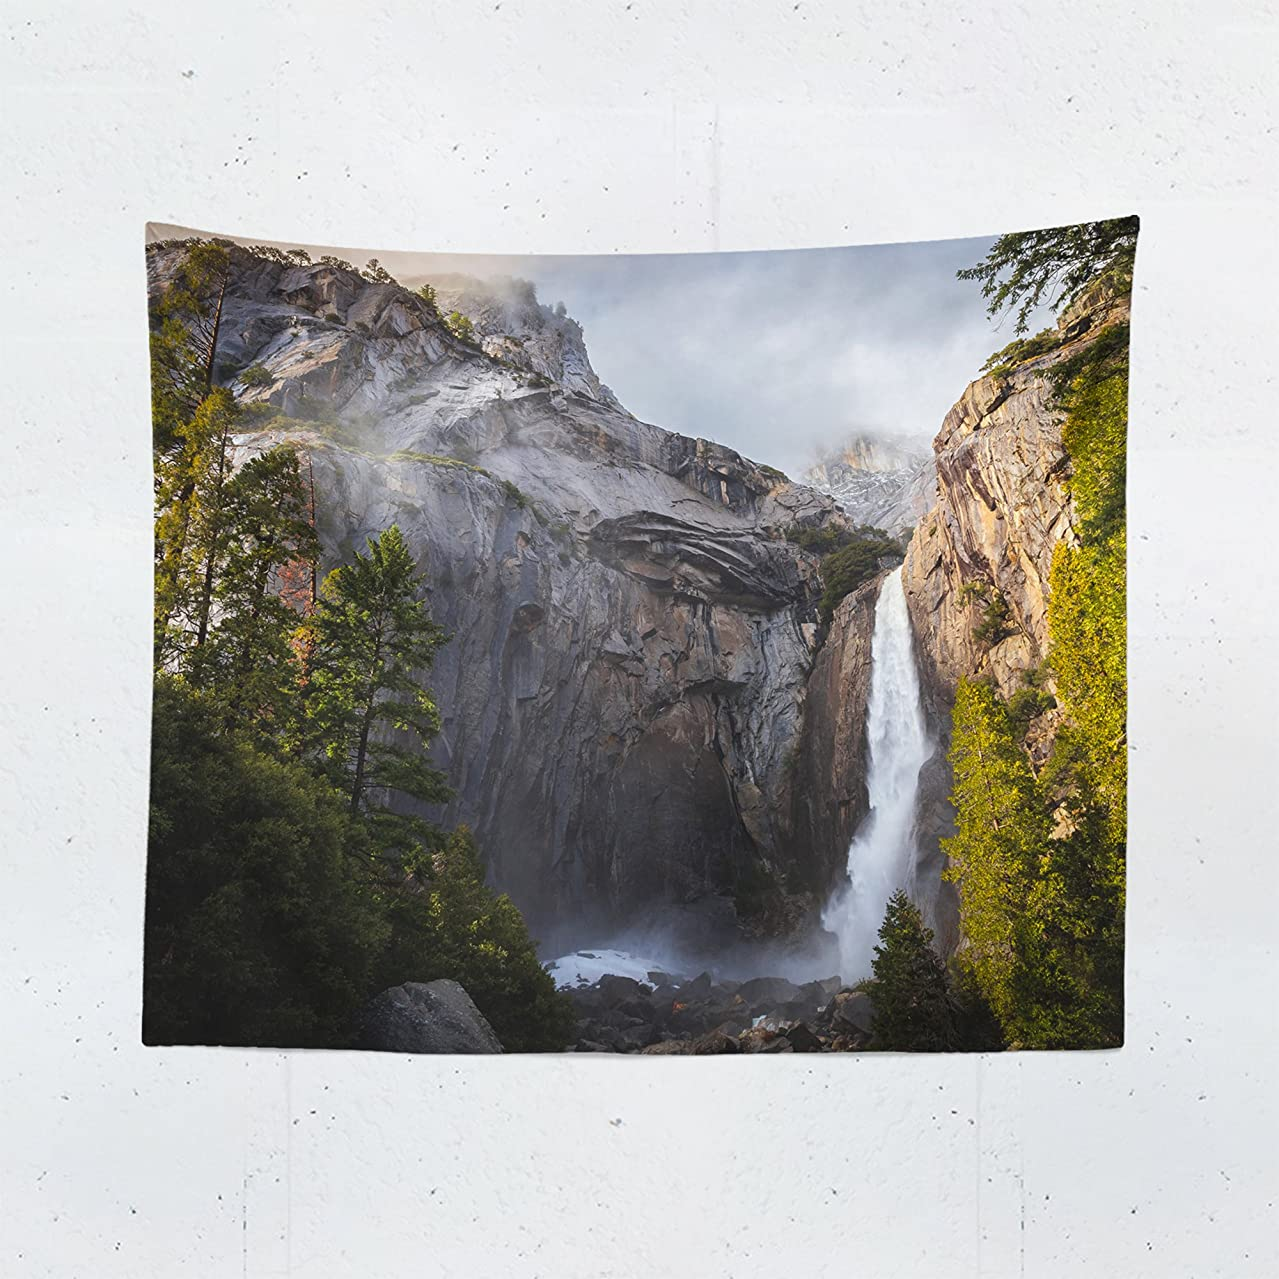 Waterfall Tapestry Wall Hanging Yosemite National Park Scenic Landscape Beautiful Tapestries Decor College Dorm Living Room Art Gift Bedroom Dormitory Bedspread Small Medium Large - Printed in the USA